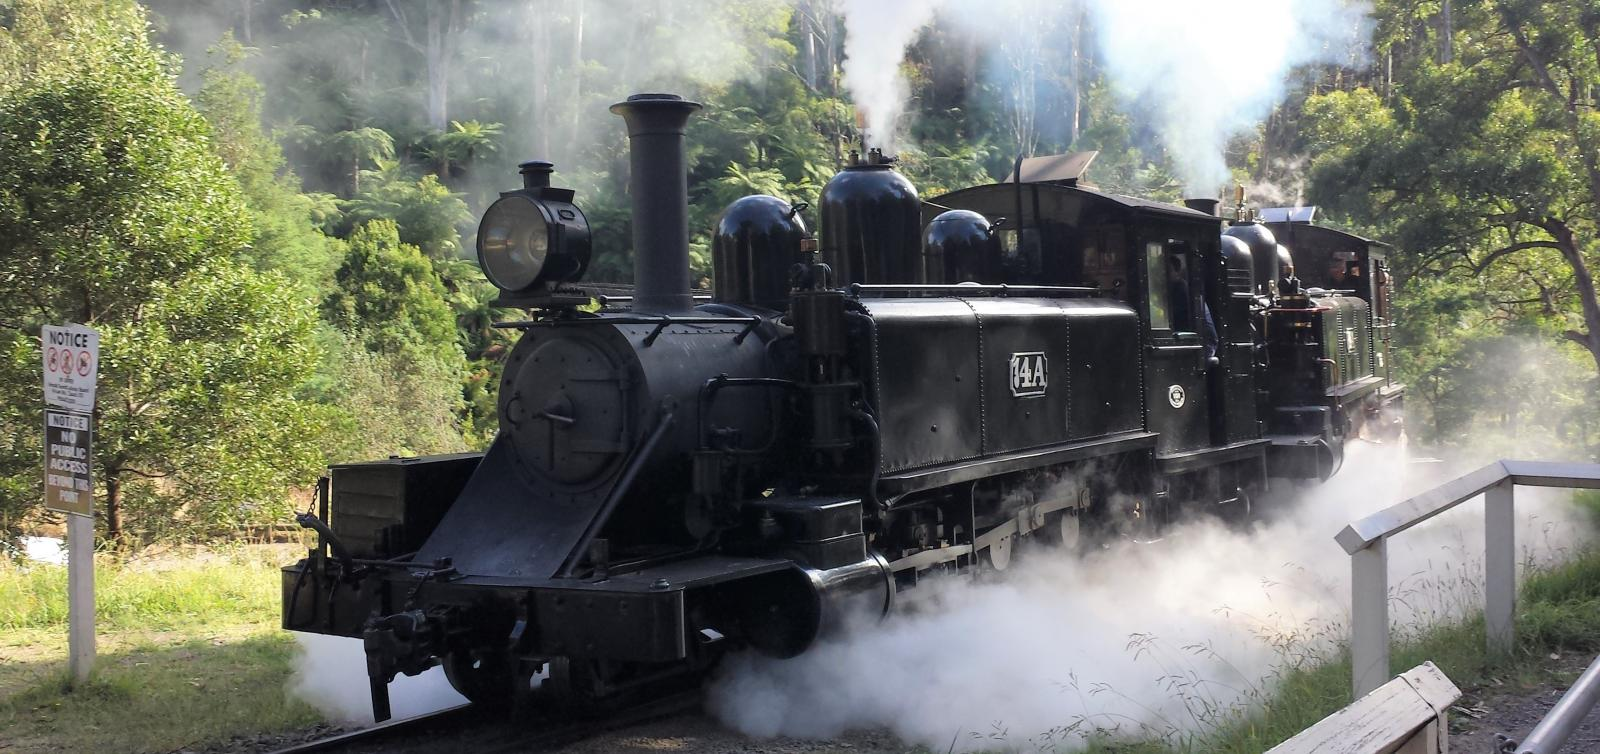 20180222_095752_Puffing Billy_14A (oil-fired) + 8A_2018_02_22_Photo Roger Waller_1600Hero_Roger_Edit_